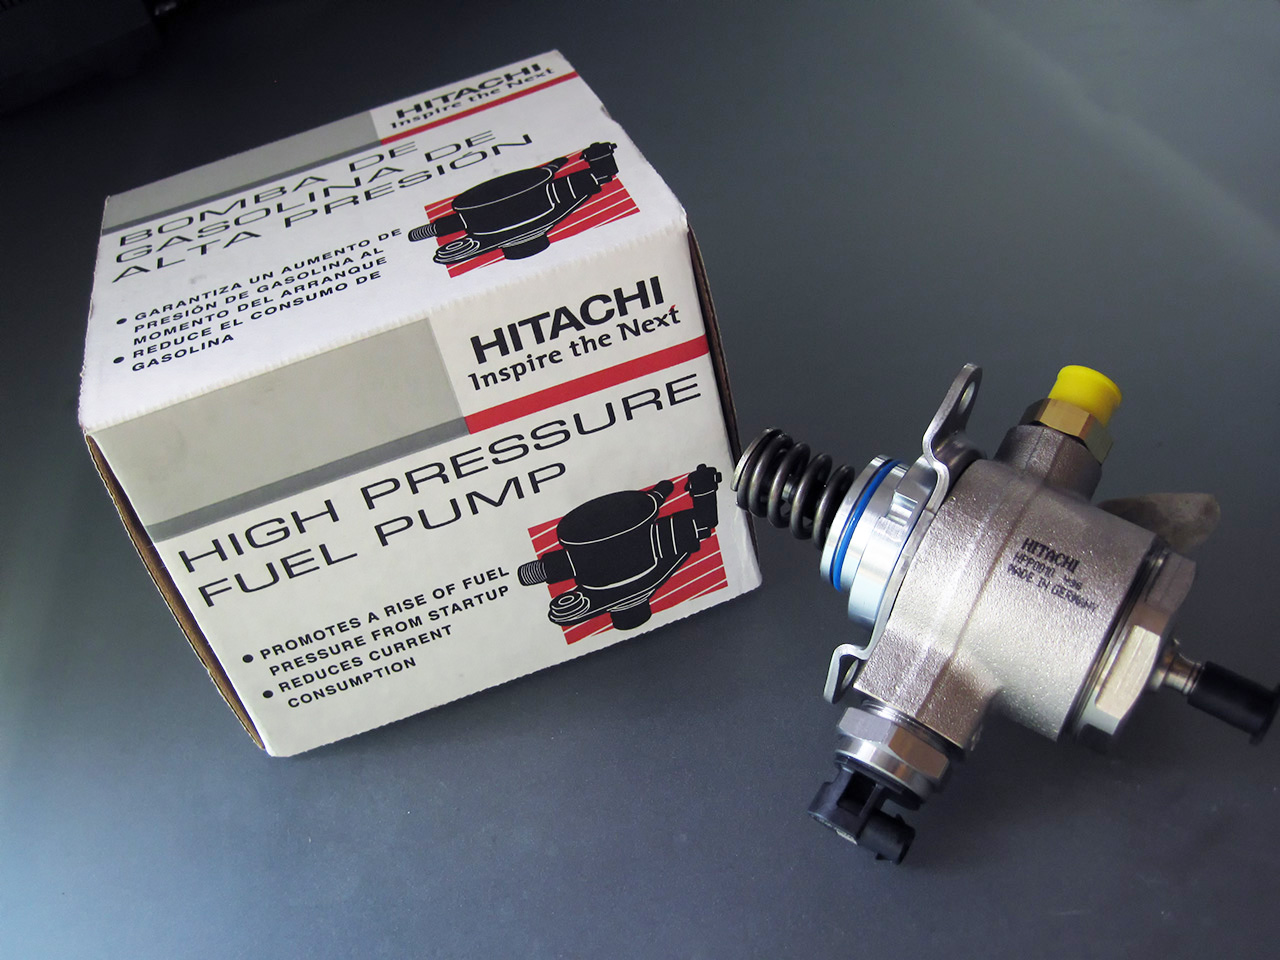 For Sale New In Box Oem High Pressure Fuel Pump Hpfp 220 Picked This Up A Suspected Leaking On My A4 And Discovered That Wasnt The Issue Im Past Return Period So It Goes